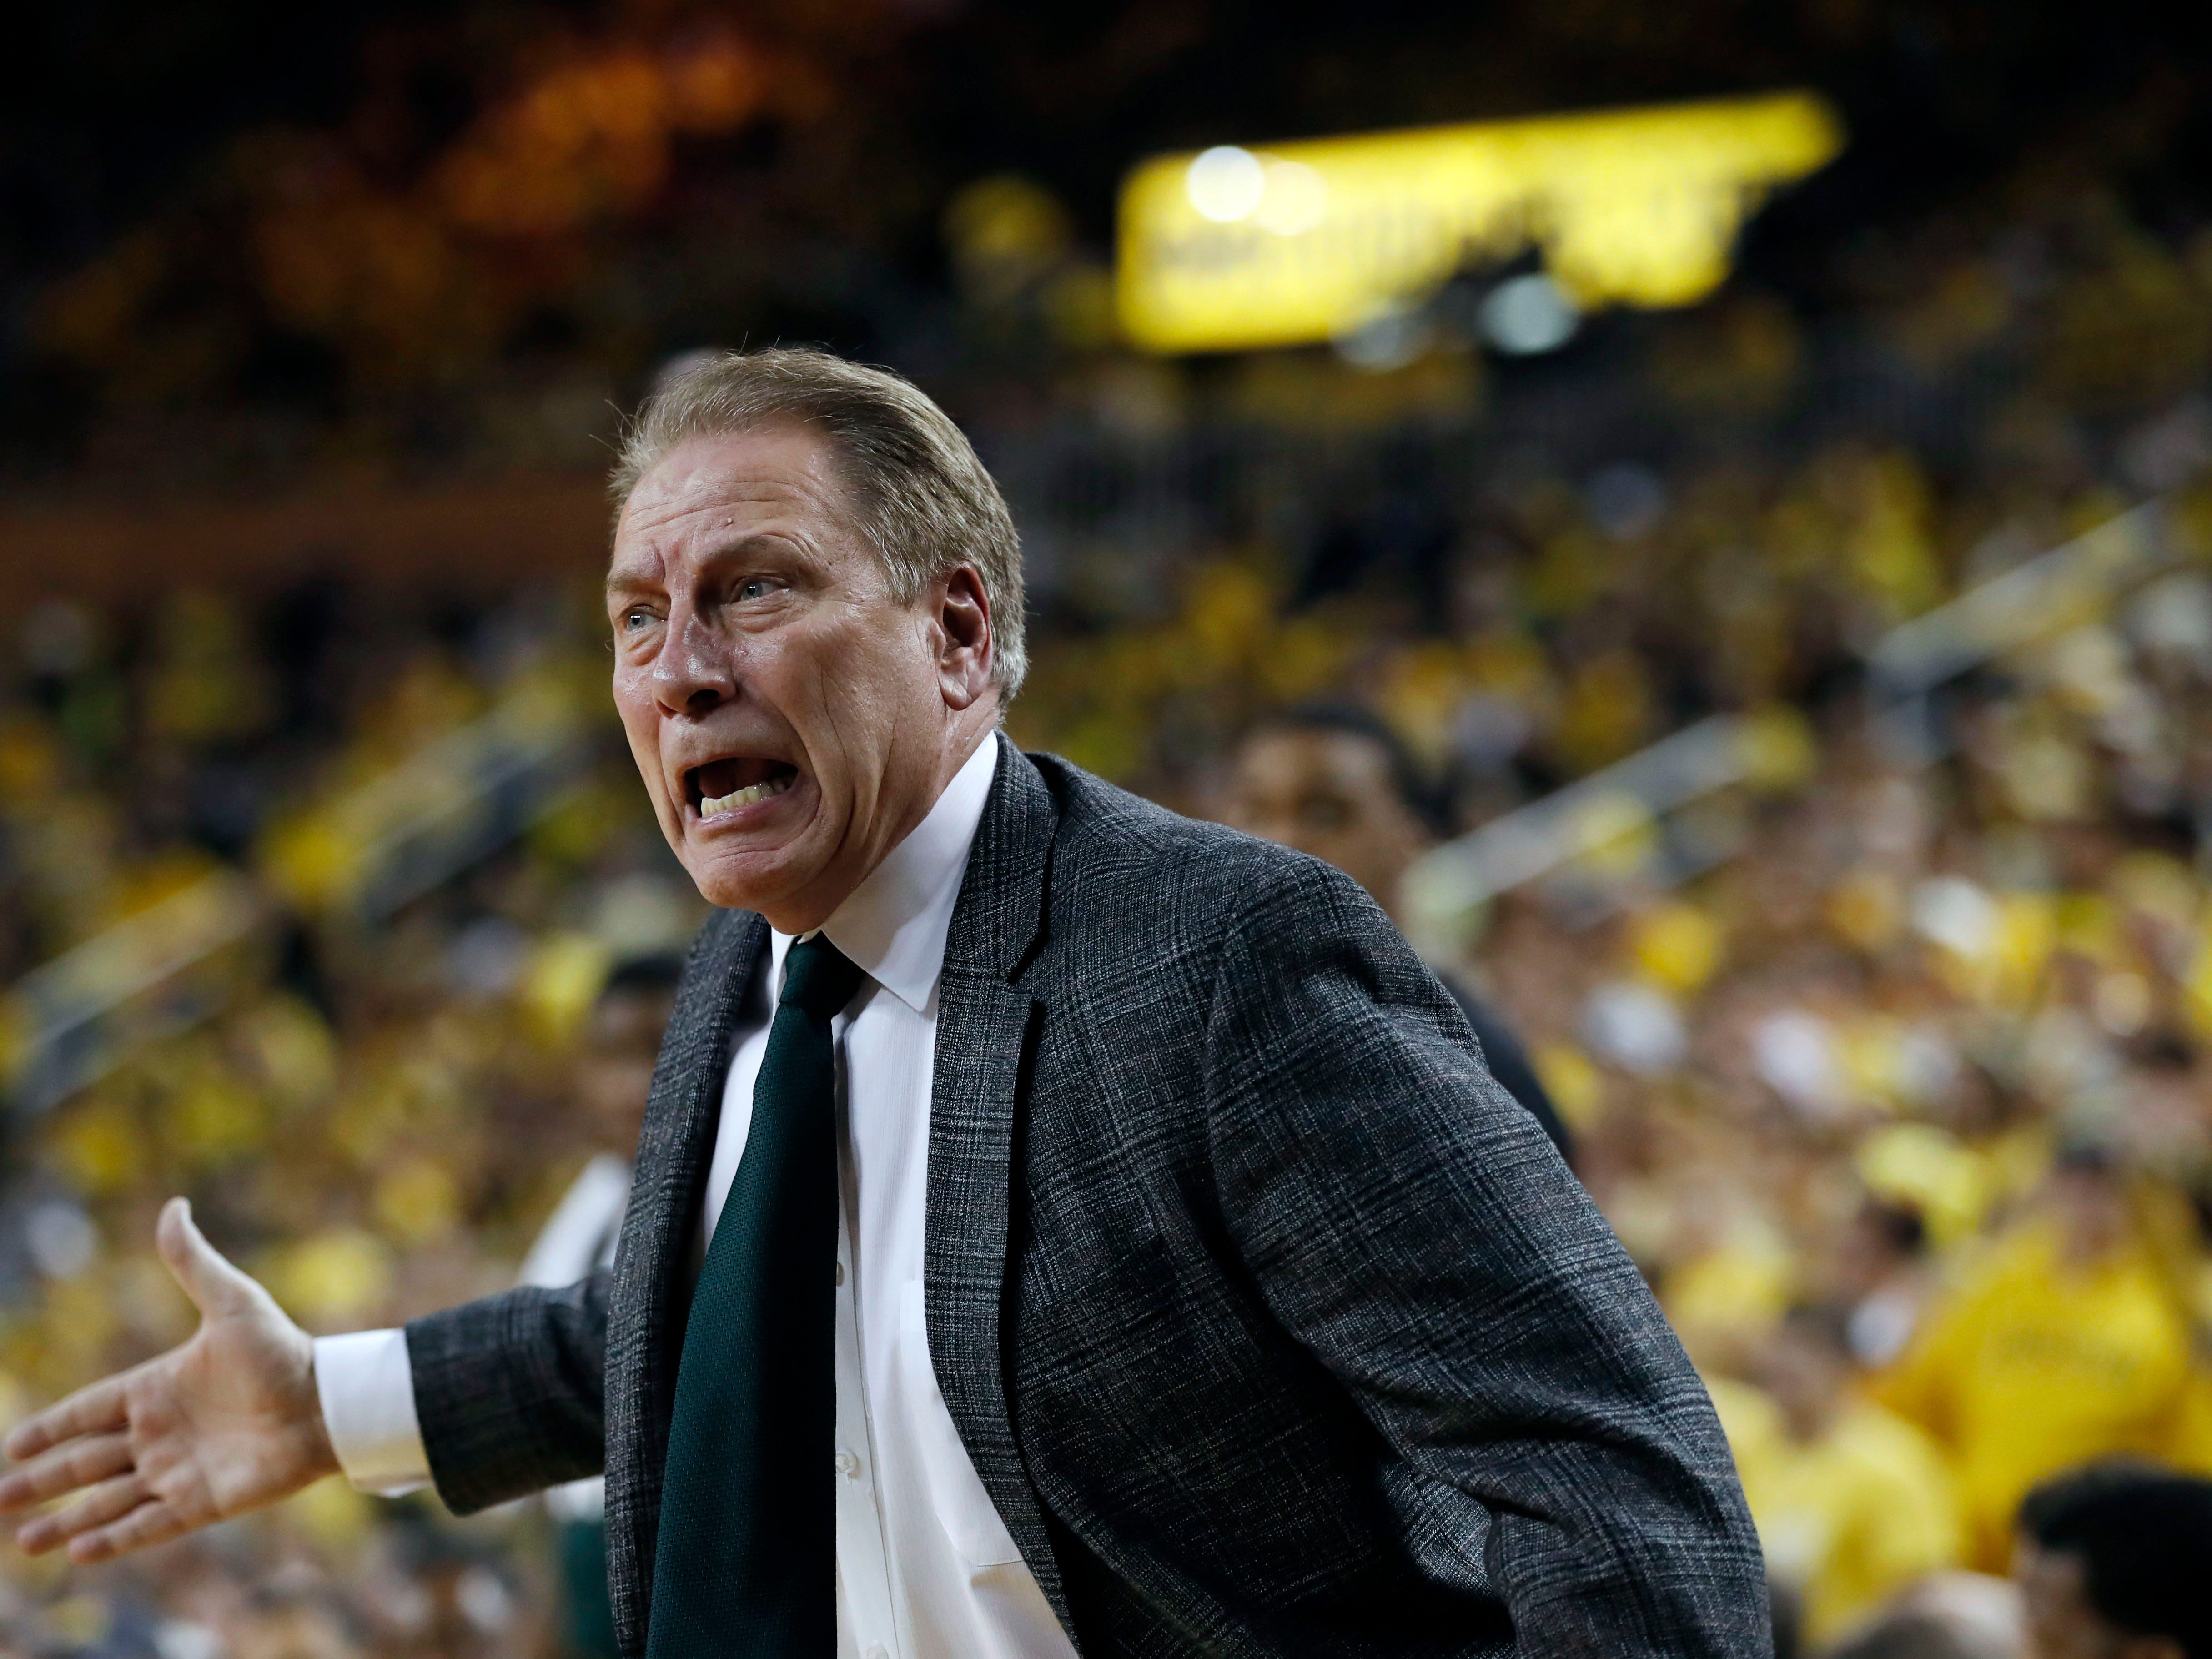 Michigan State head coach Tom Izzo reacts during the first half of an NCAA college basketball game against Michigan, Sunday, Feb. 24, 2019, in Ann Arbor, Mich.